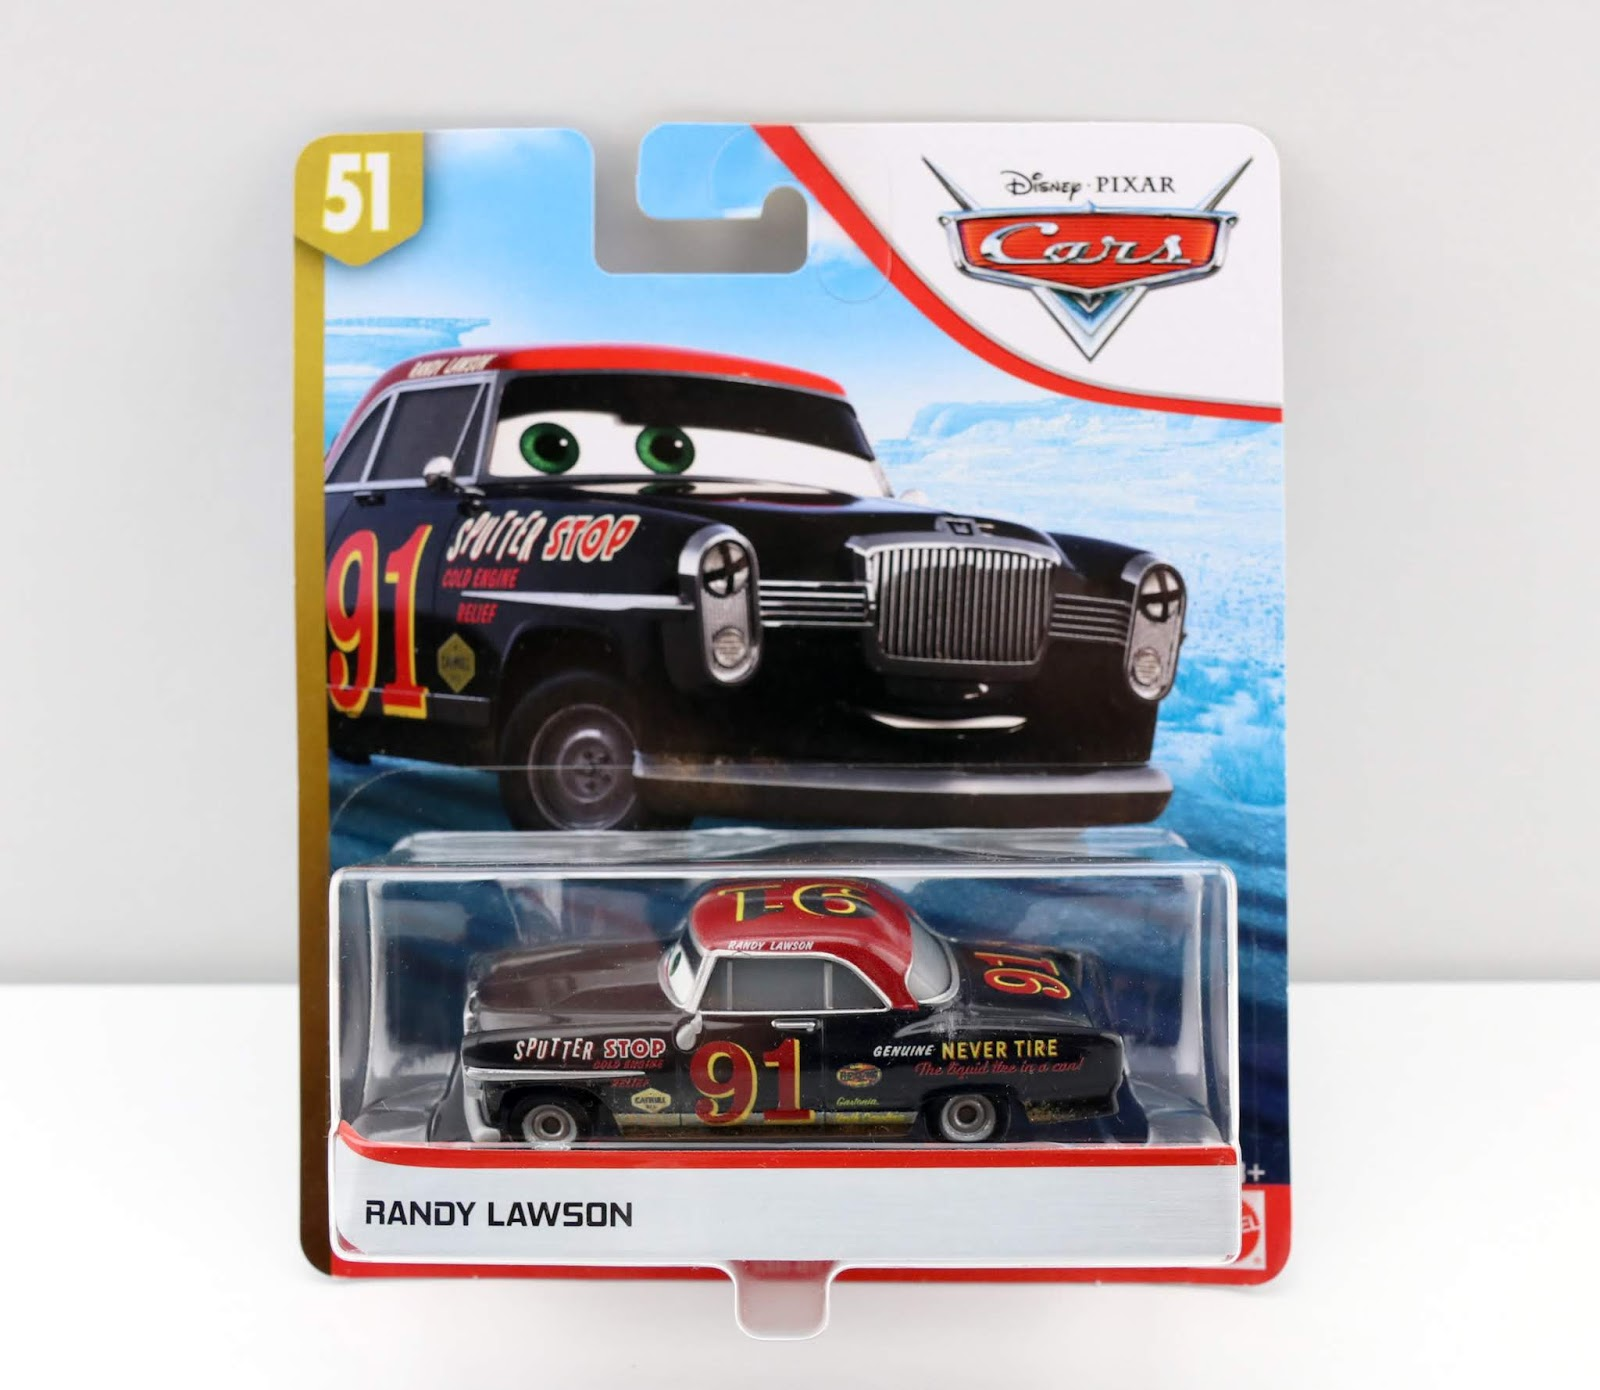 Cars 3 Randy Lawson diecast review